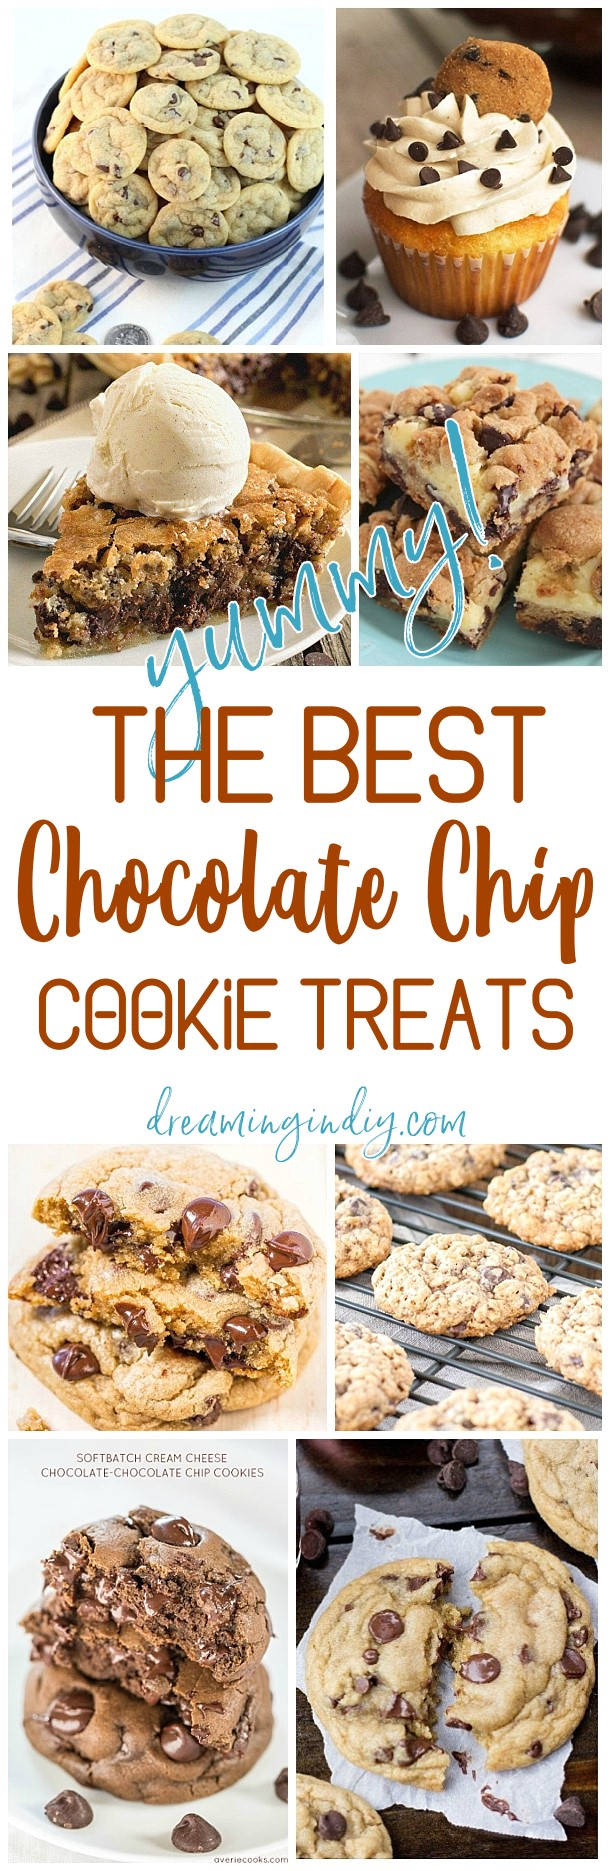 The BEST Chocolate Chip Cookies And Desserts Recipes - New recipes and the classics all in one place! Easy, Yummy, Simple and Quick - Favorite Sweet Treats for Birthday Parties, Father's Day or any day you want to feel like a special occasion! THIS is every Chocolate Chip Cookies Lover's Graceland. Dreaming in DIY